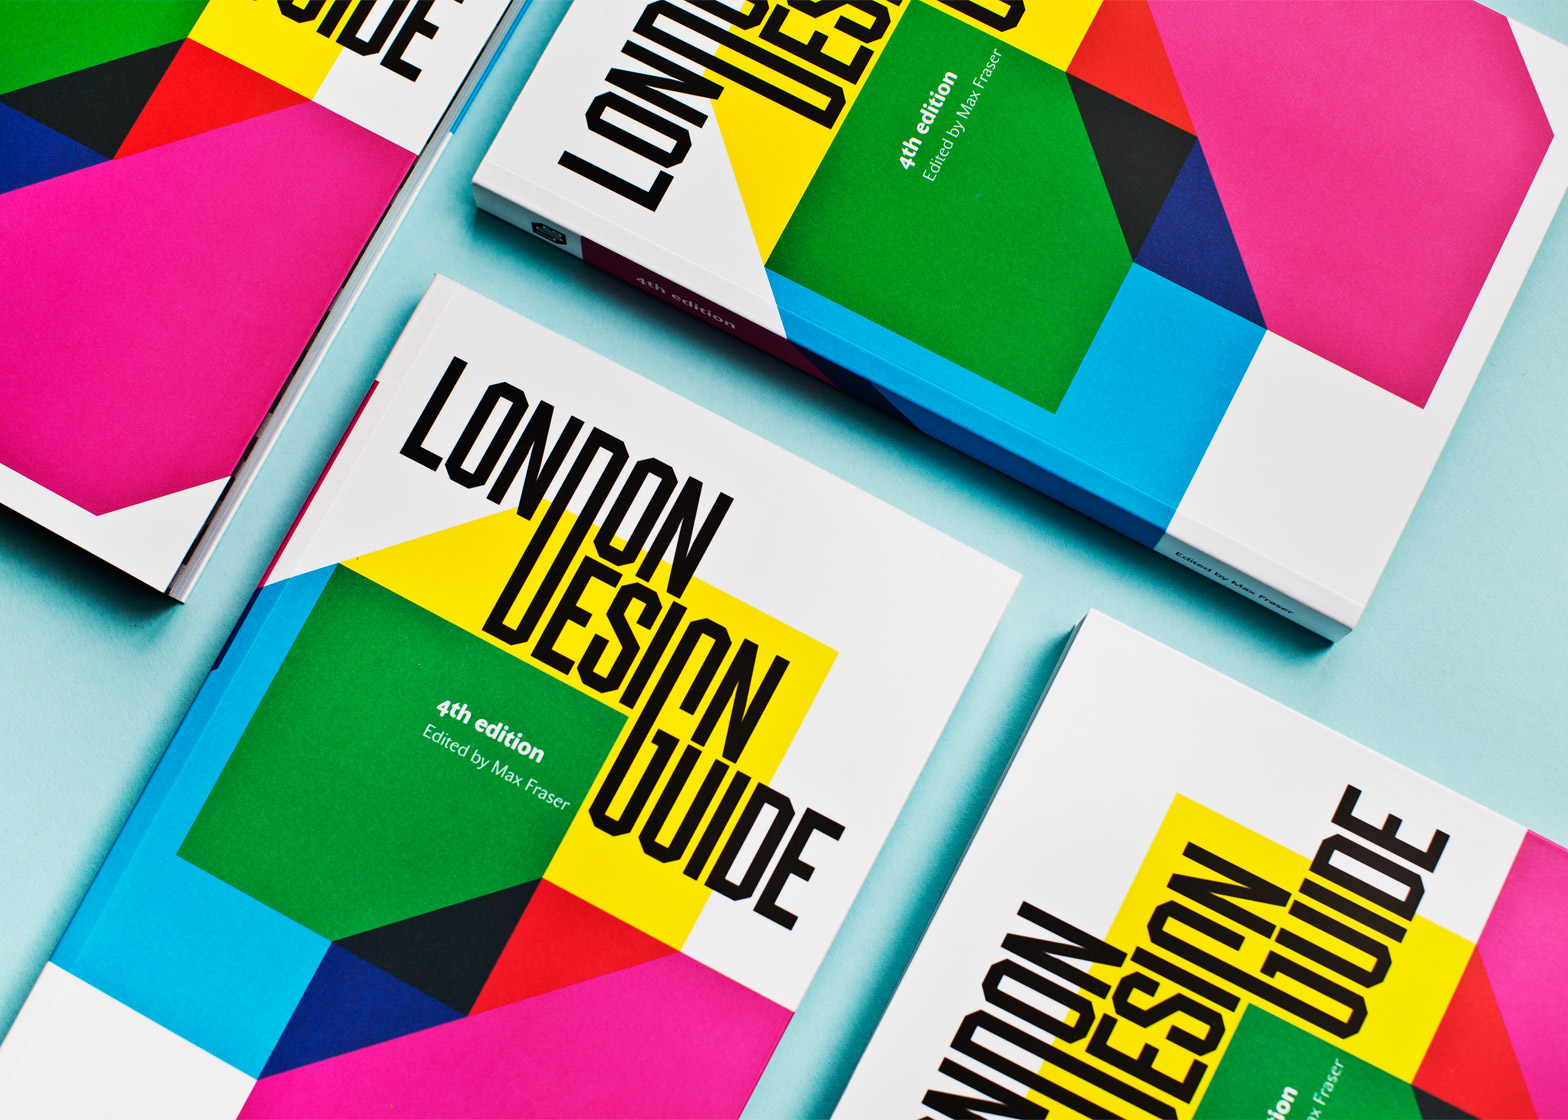 London Design Guide by Max Fraser